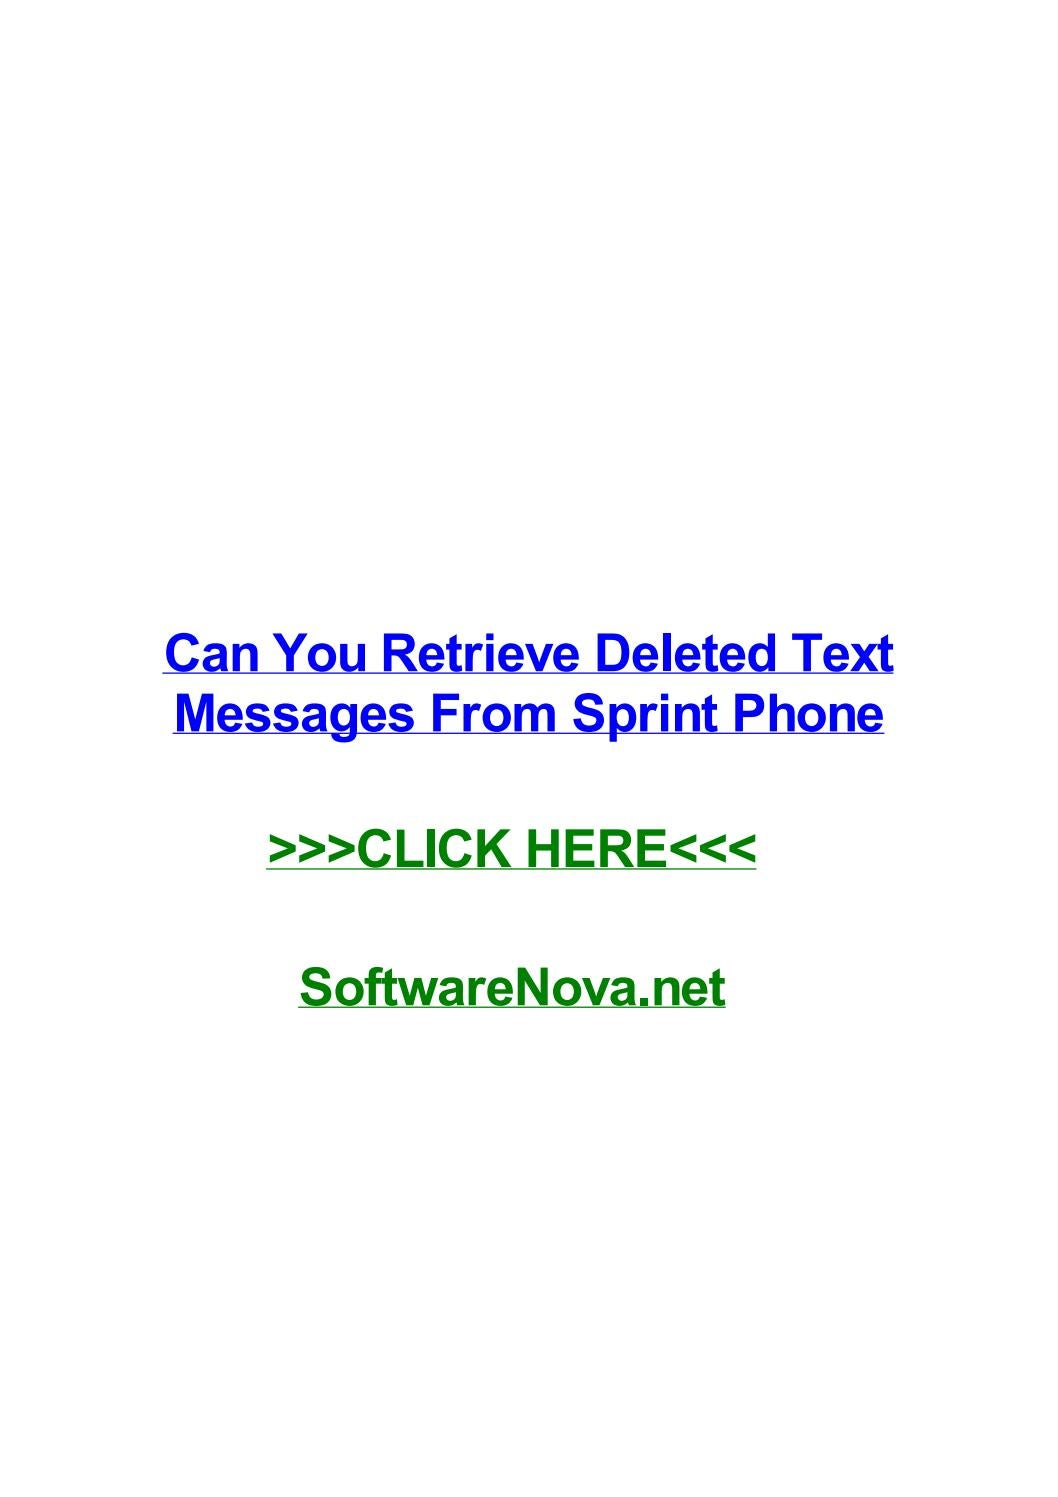 Can you retrieve deleted text messages from sprint phone by